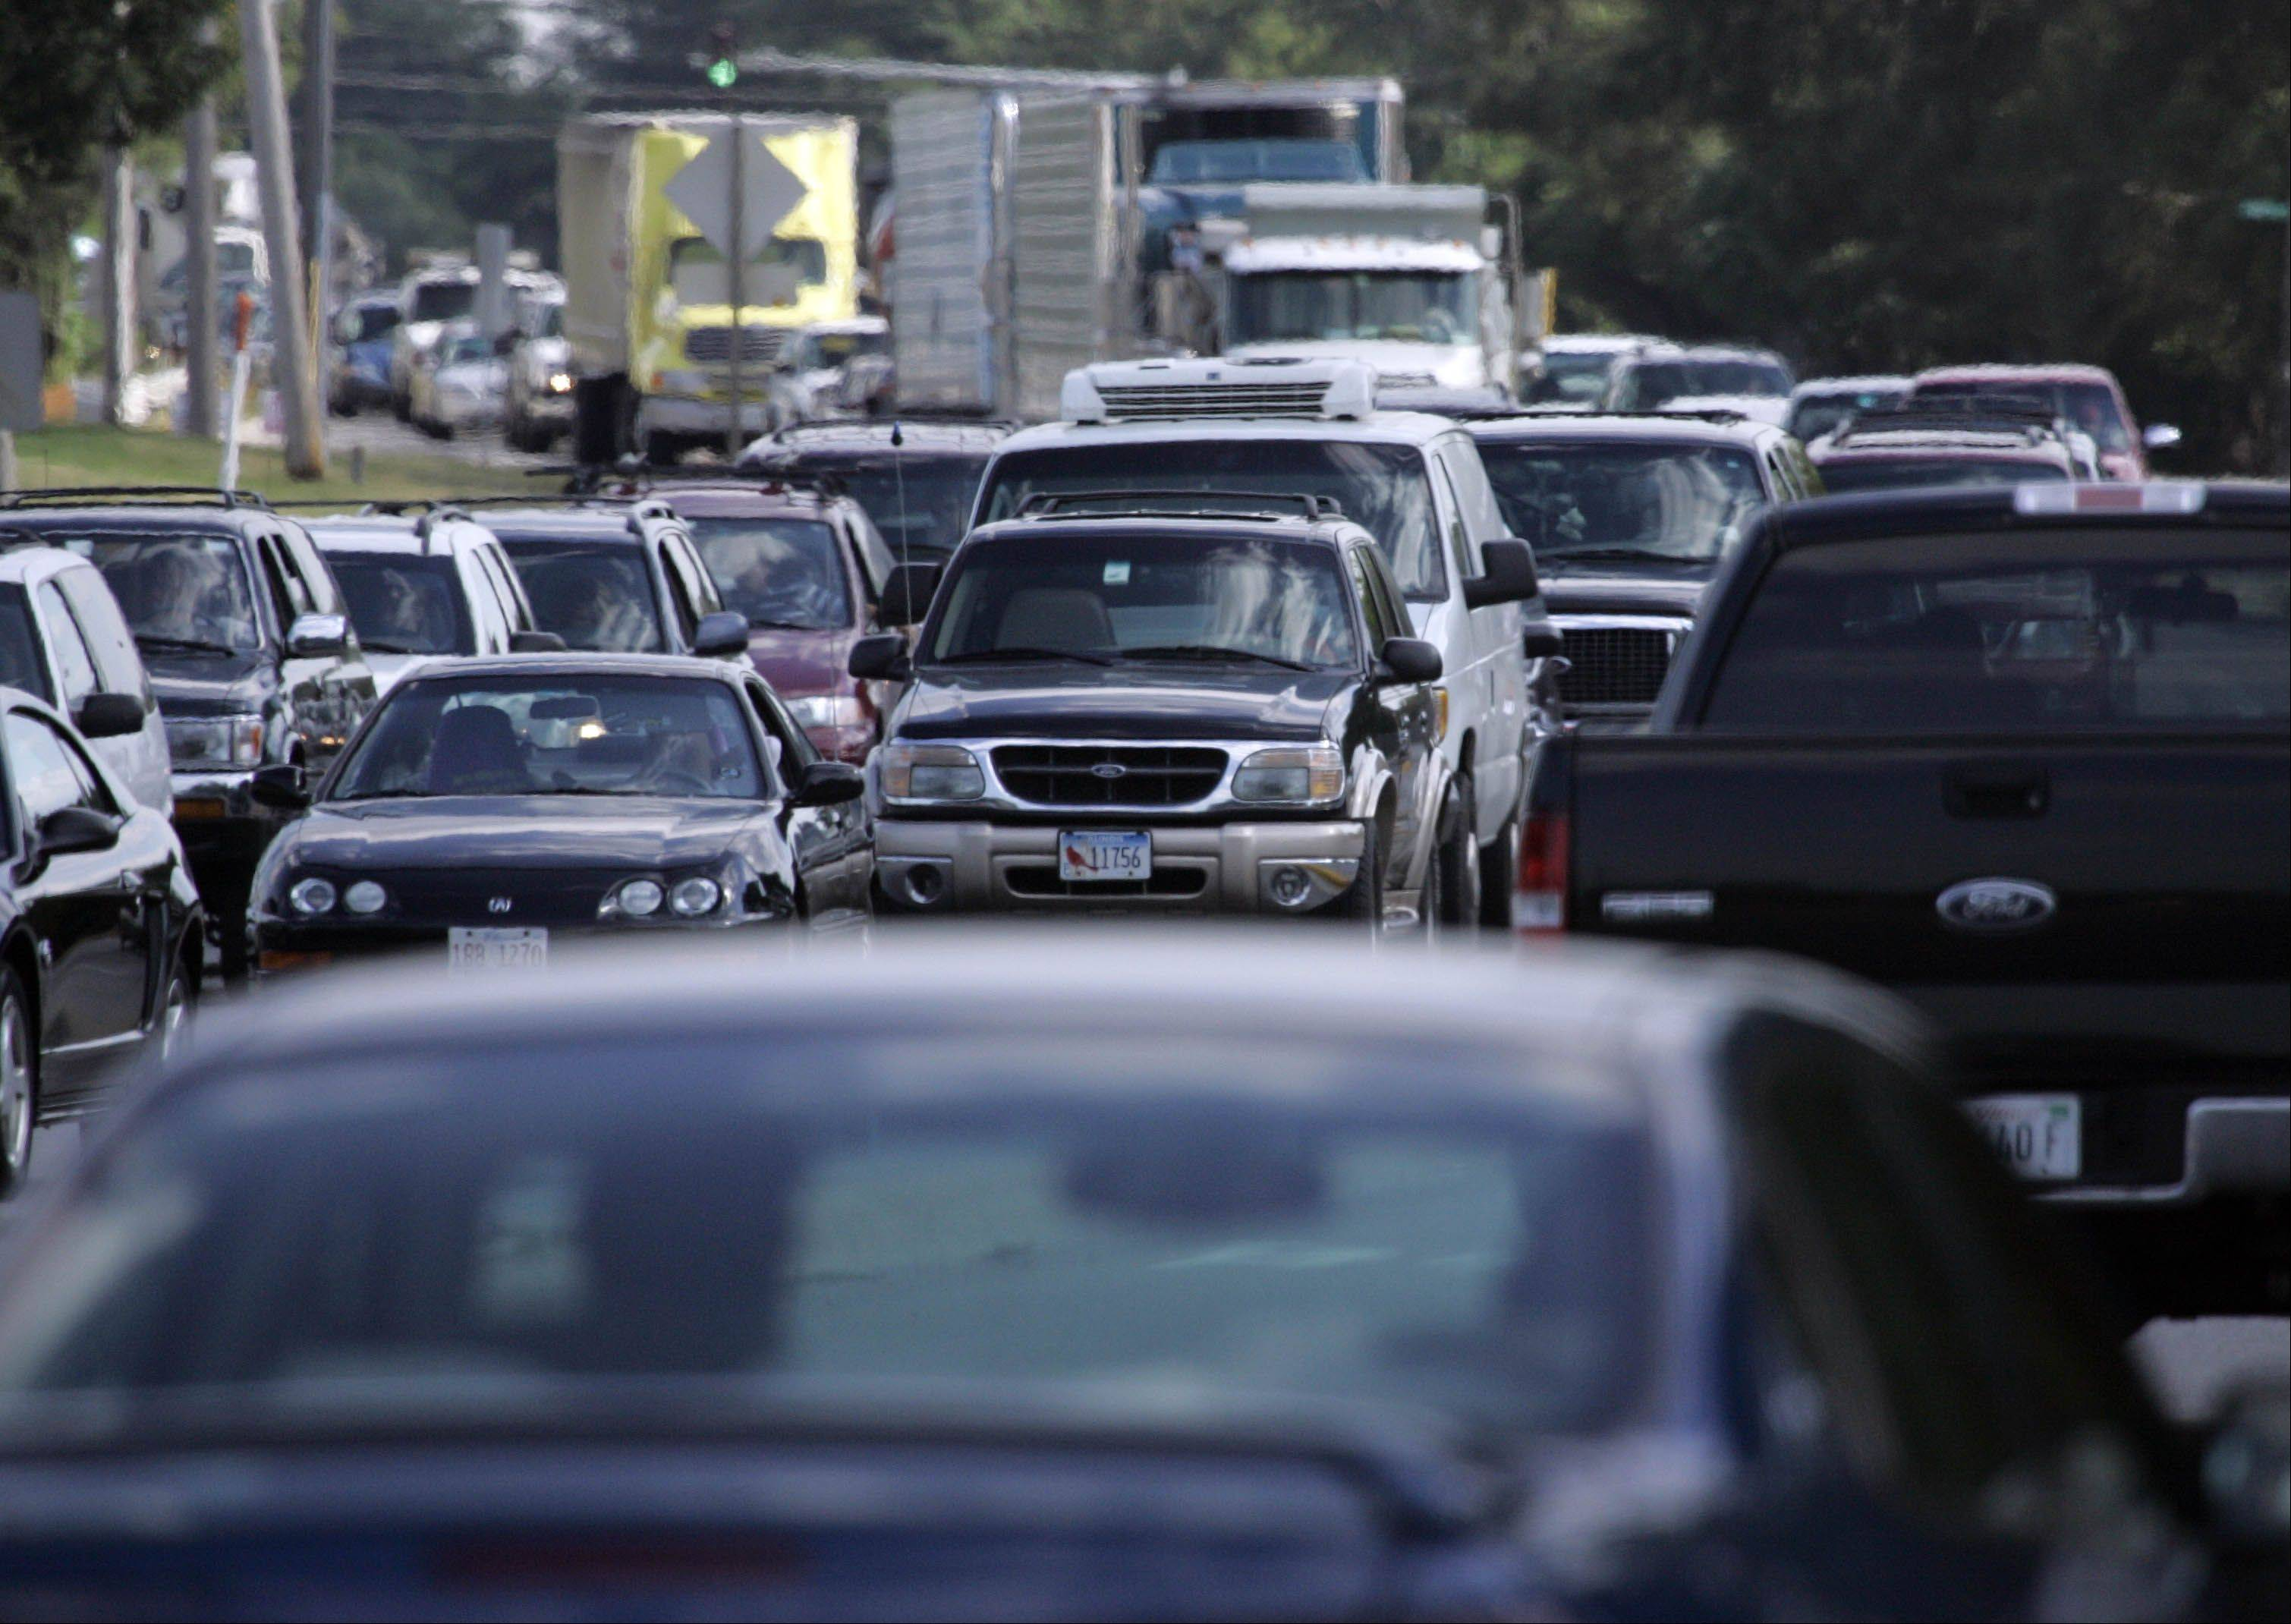 Construction set to begin Monday will widen an often-congested stretch of Route 59 between Ferry Road and Aurora Avenue/New York Street in Naperville and Aurora.